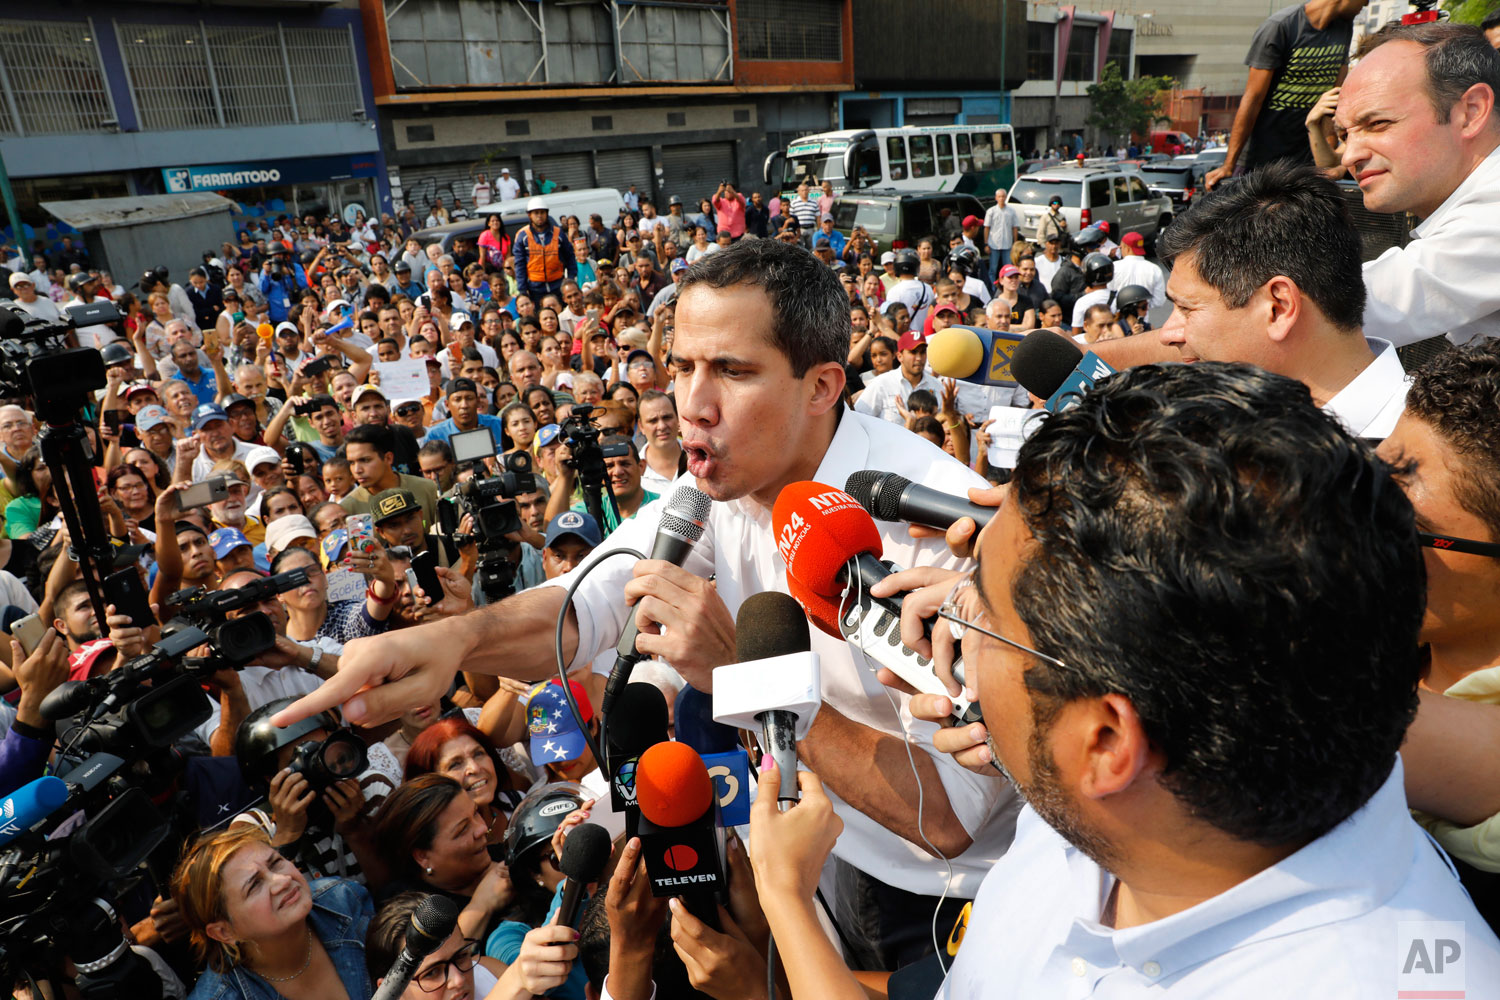 Opposition leader Juan Guaido, who has declared himself Venezuela's interim president, speaks to supporters during a rally in San Martin Caracas, Venezuela, Wednesday, April 10, 2019. (AP Photo/Ariana Cubillos)